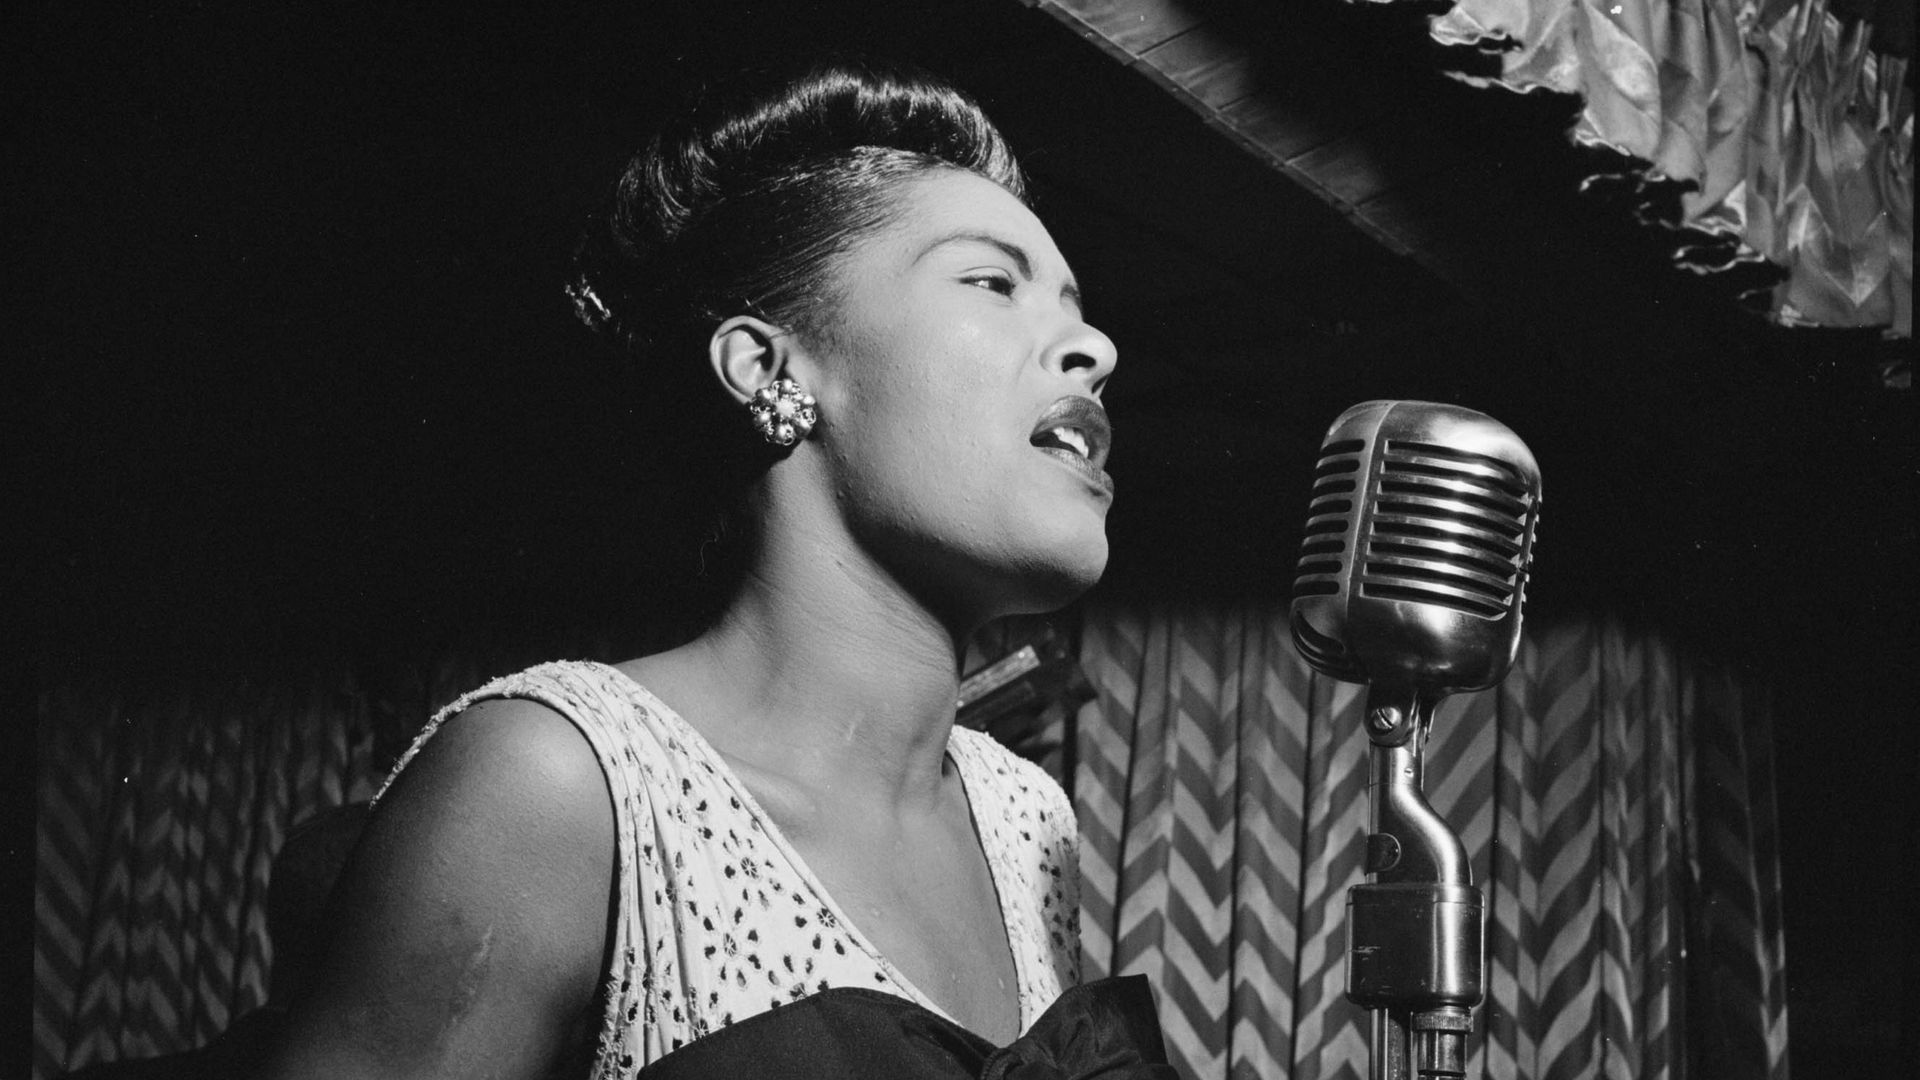 American jazz singer Billie Holiday is shown performing at the Club Downbeat in Manhattan in February 1947.